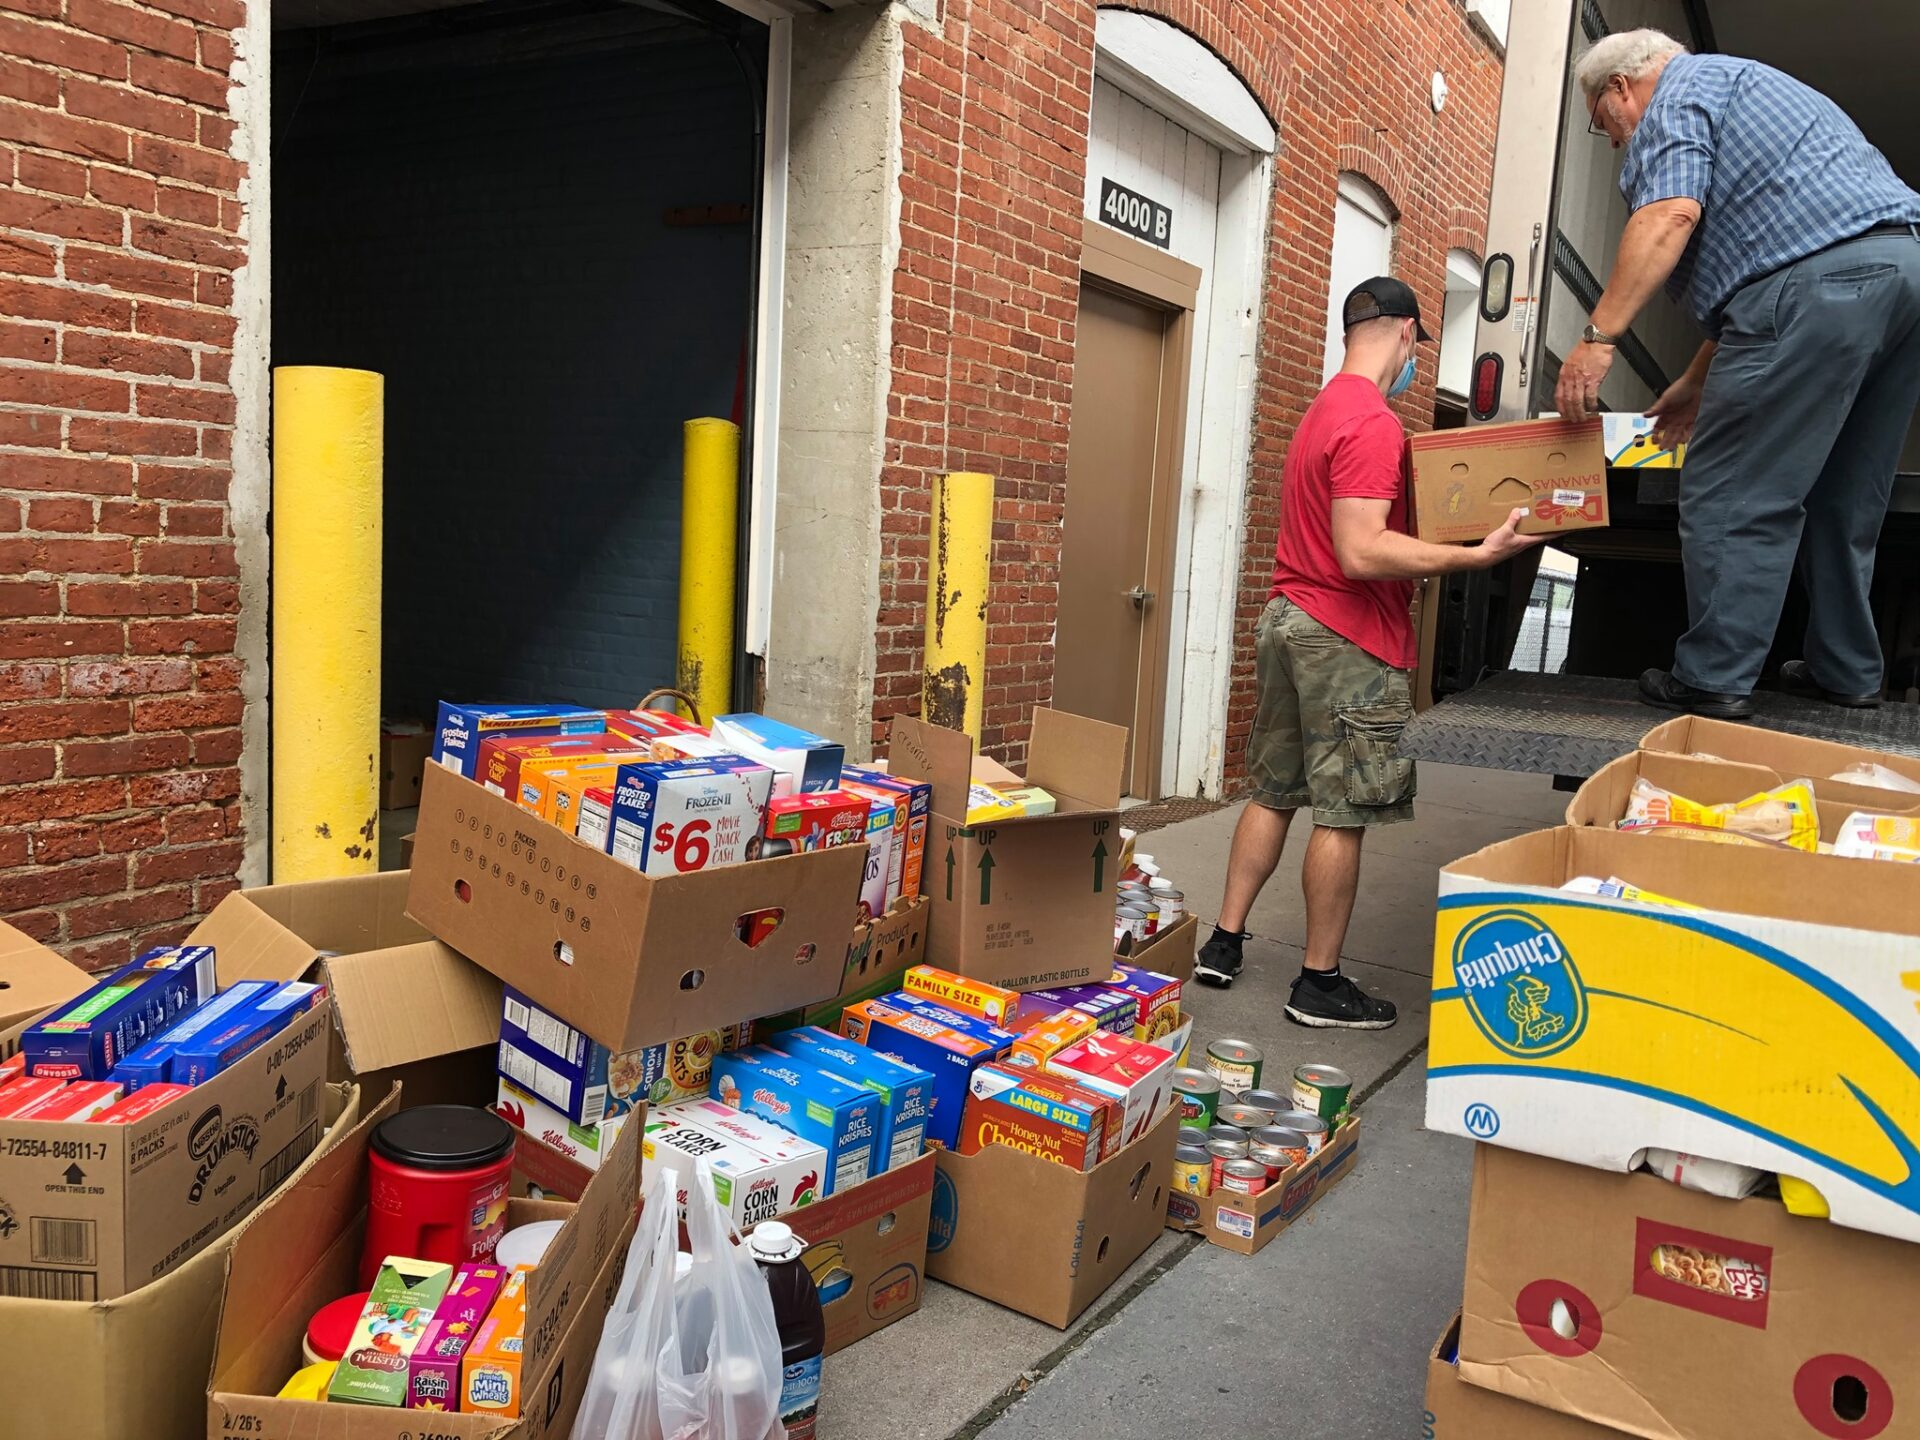 Donations outside Water Street Mission. (Source: Water Street Mission)